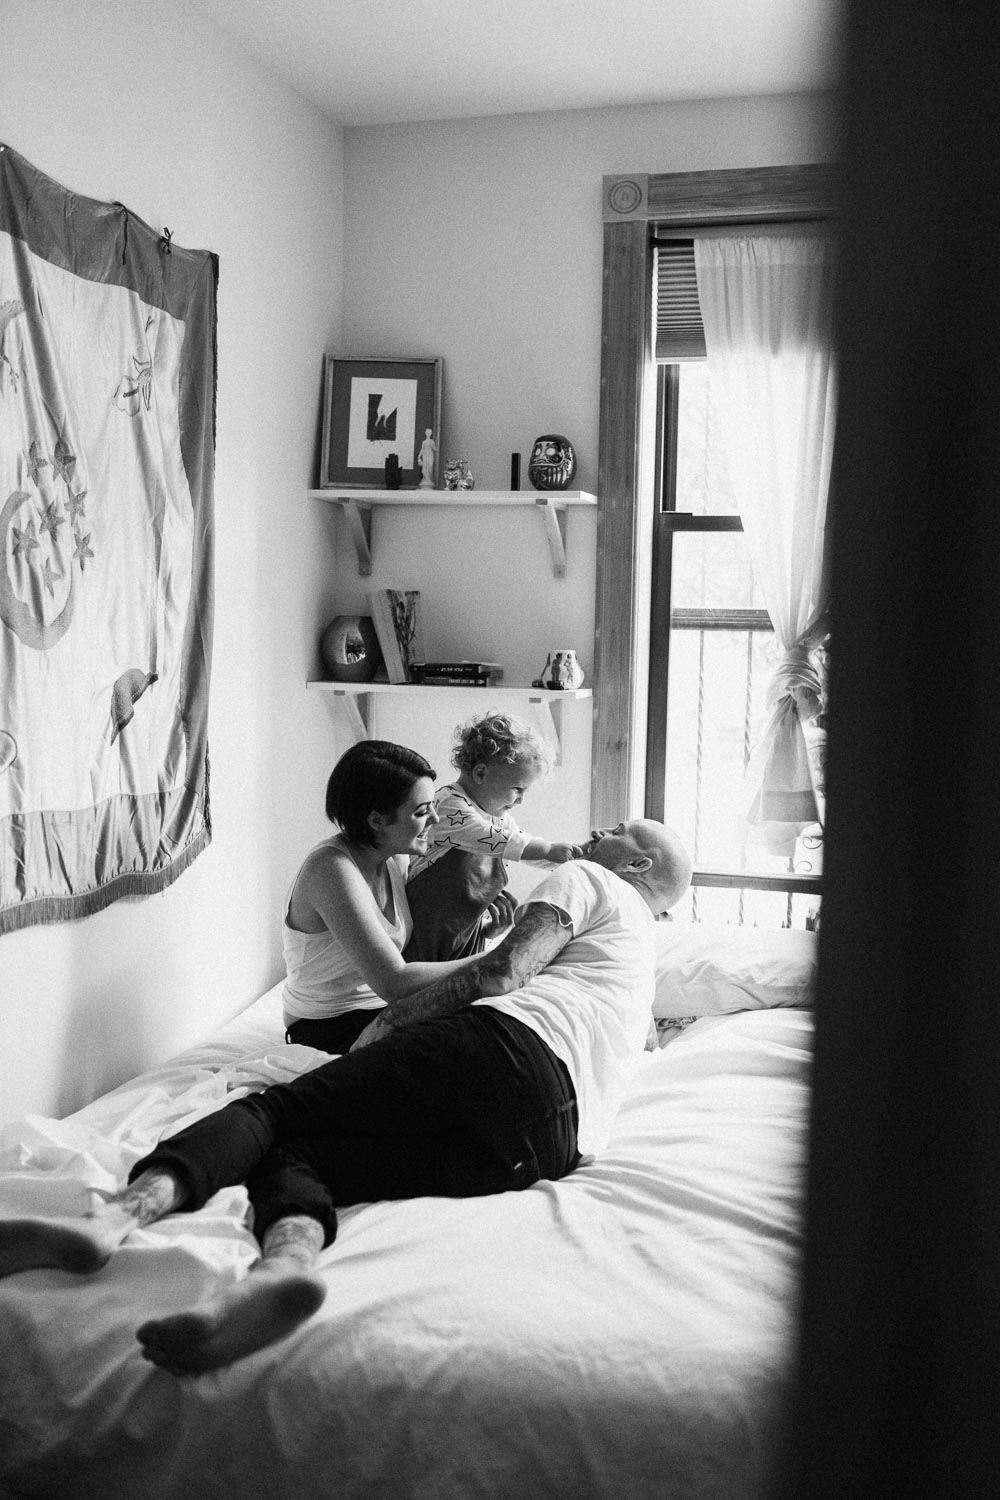 natural-and-artistic-intimate-happy-family-playing-and-snuggling-on-bed-during-in-home-session-with-jen-fairchild-photography-salt-lake-ut